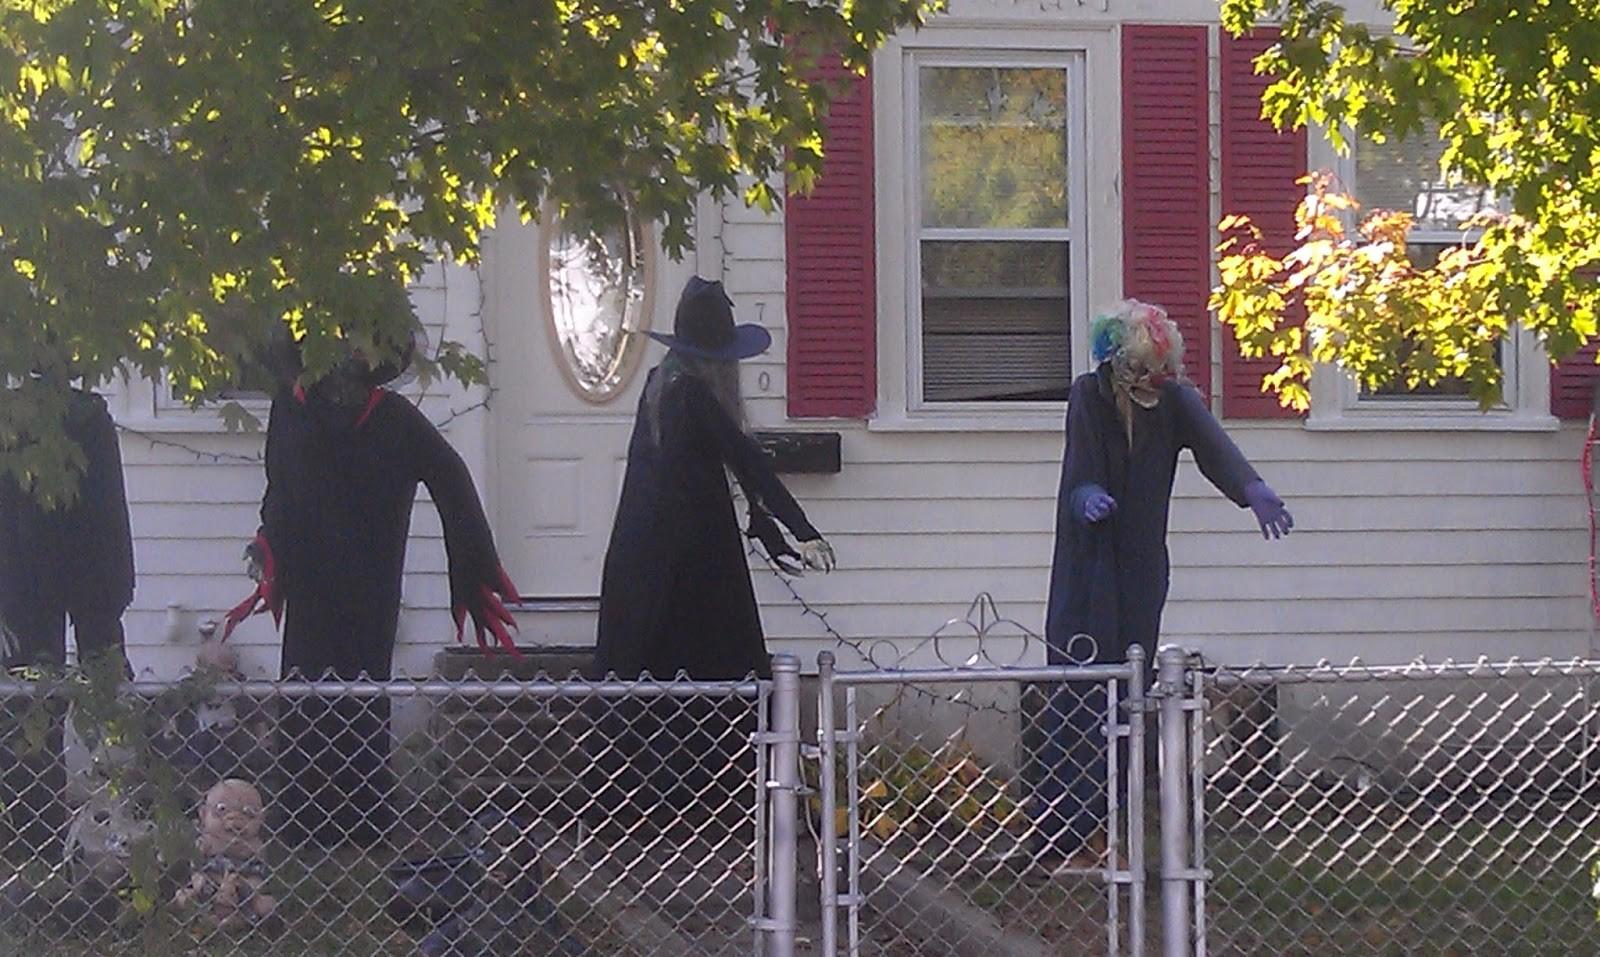 Magnificent Marvellous Halloween Decorations Outside